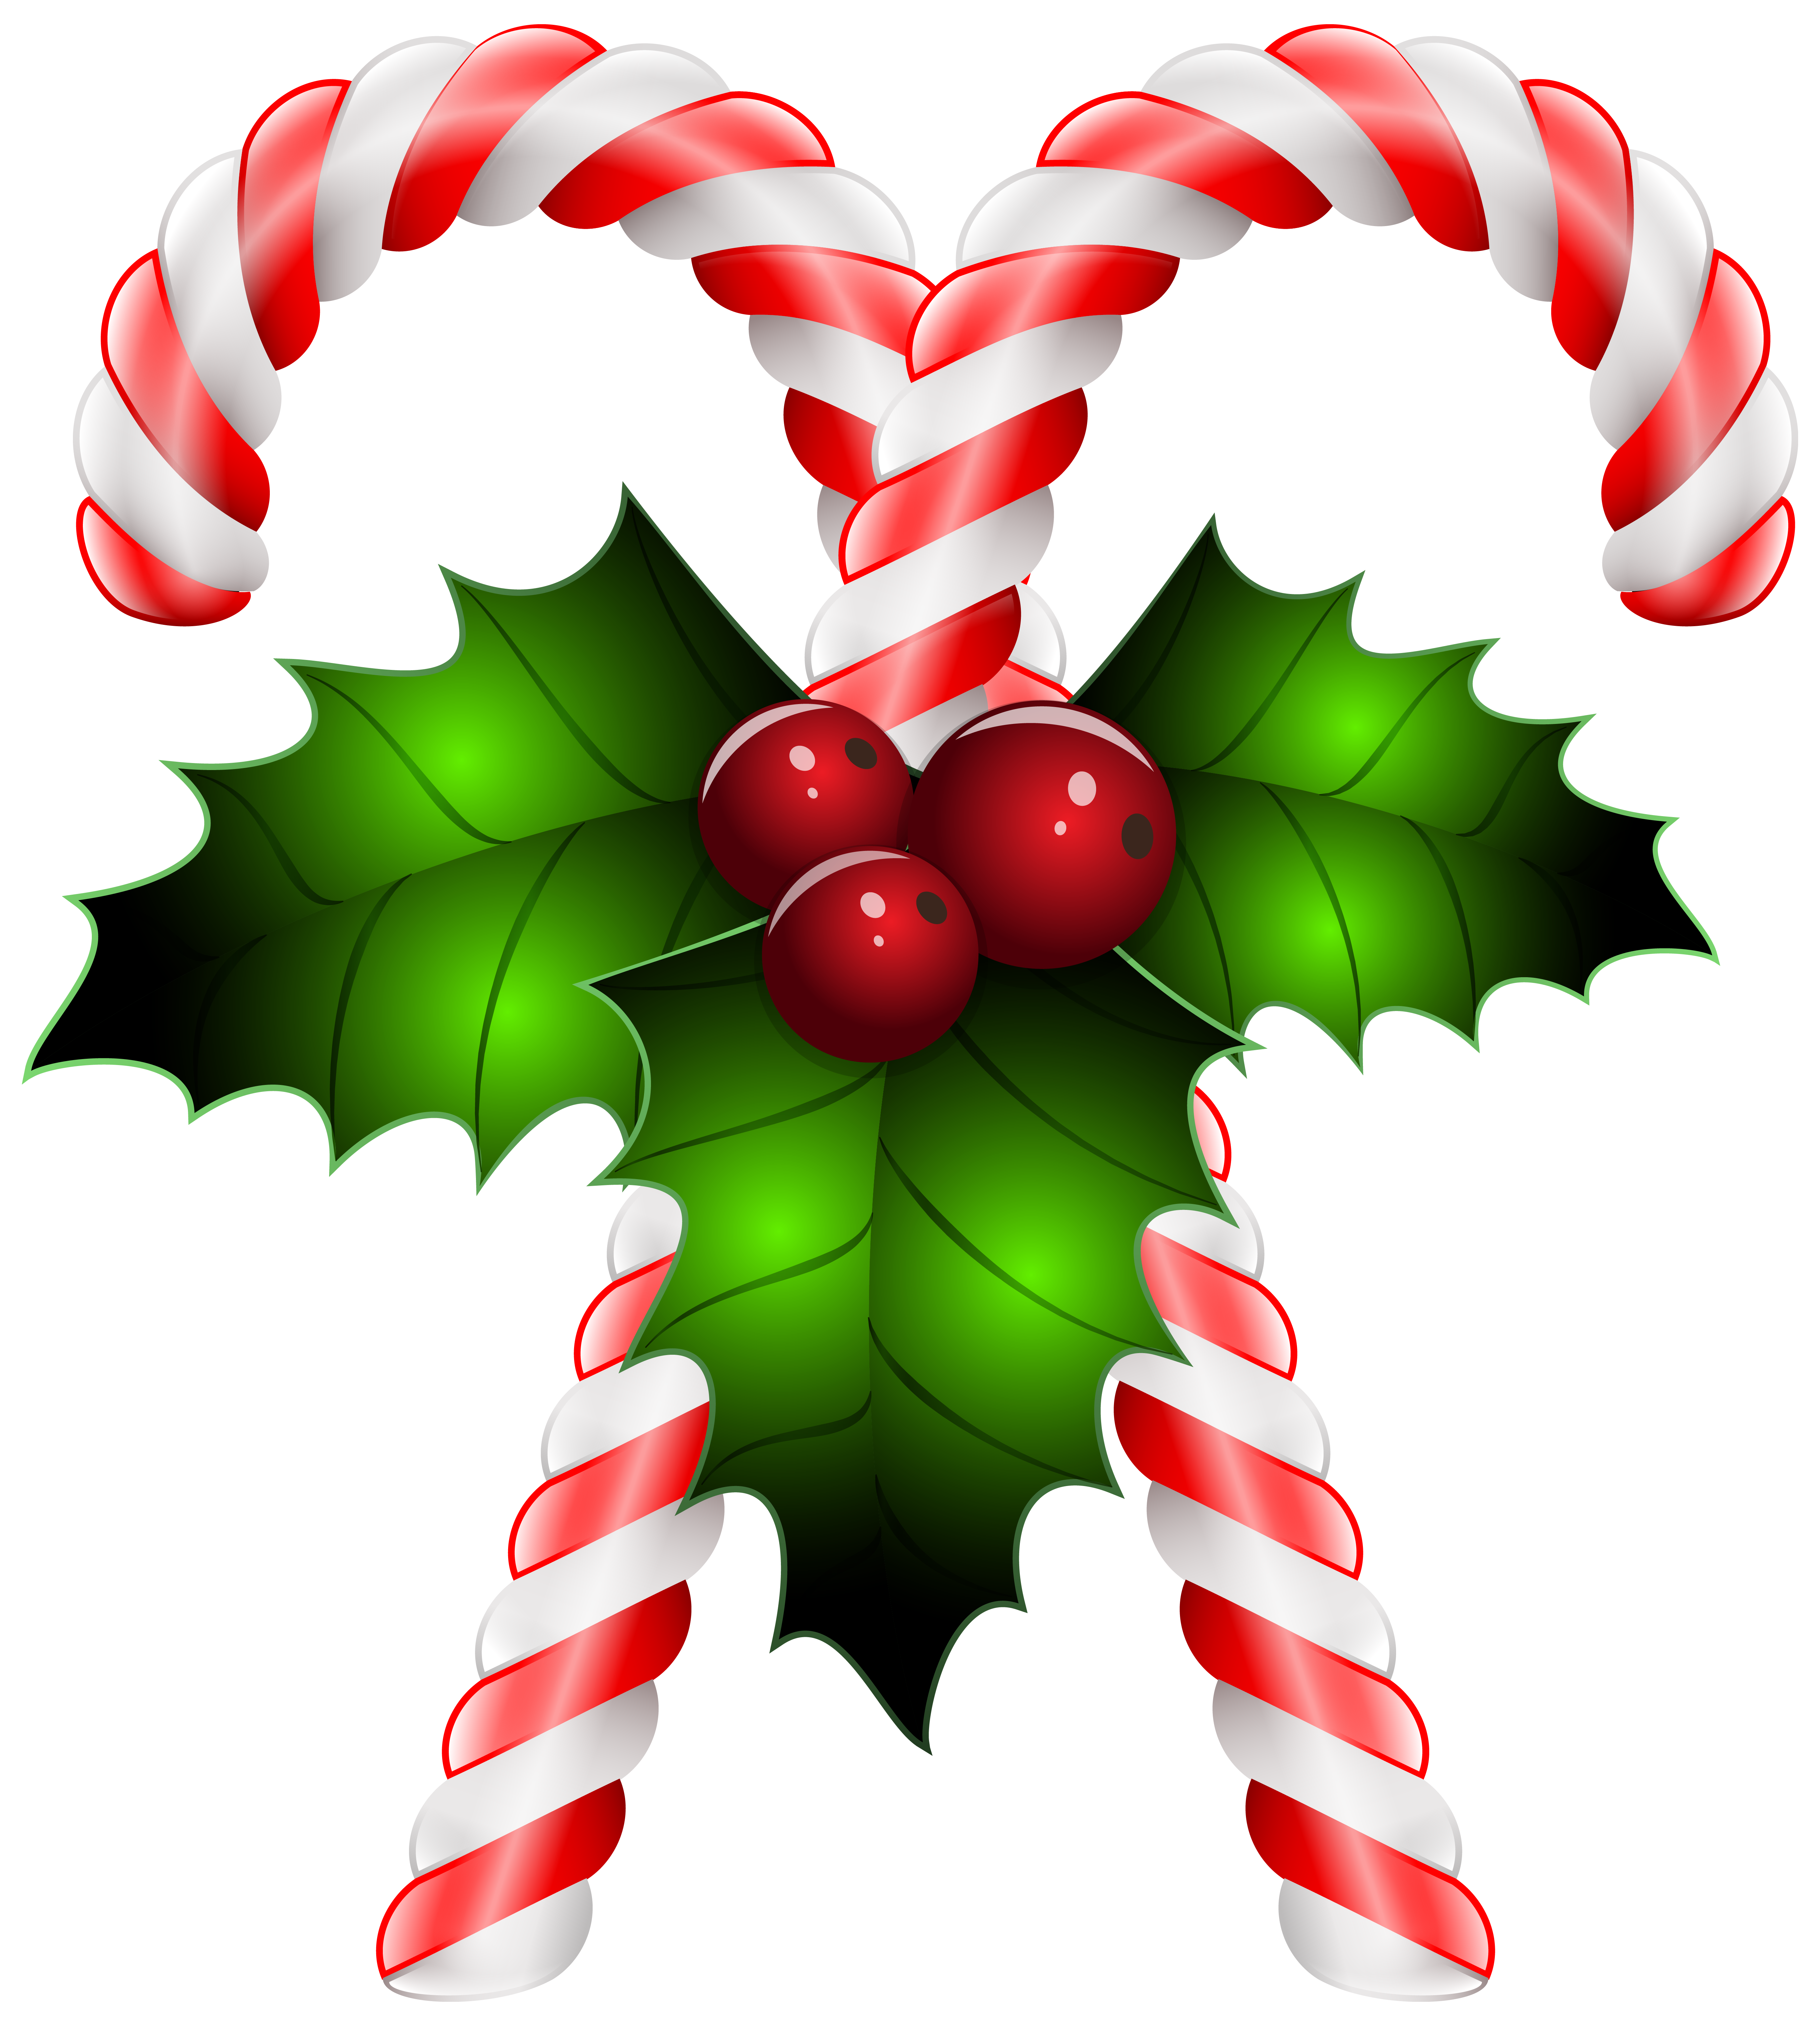 Christmas love clipart svg library library Candy Canes with Holly Transparent PNG Clip Art Image | Gallery ... svg library library